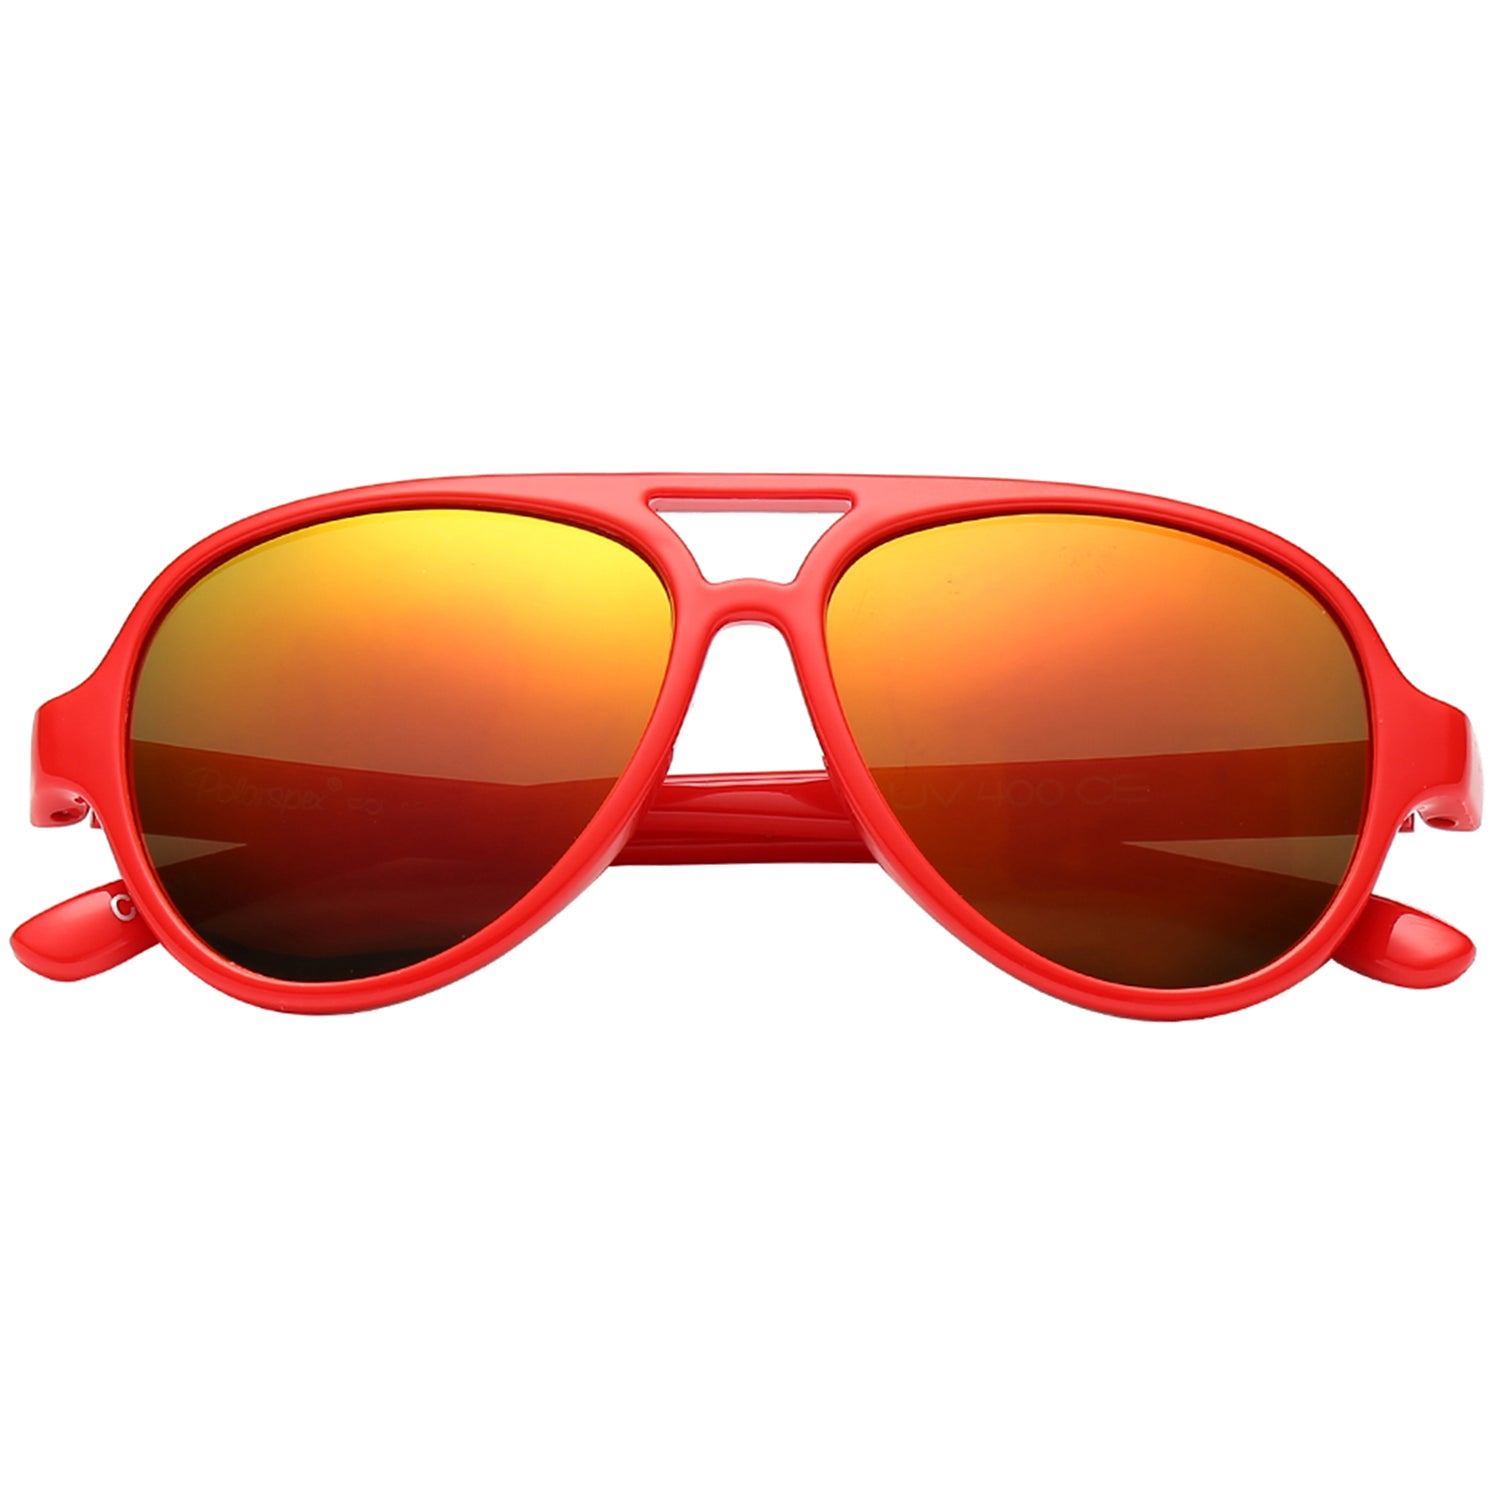 Polarspex Polarized Bendable Aviator Pilot Sunglasses with Scarlet Red Frames and Polarized Lava Red Lenses for Boys and Girls (Ages 2 - 8)